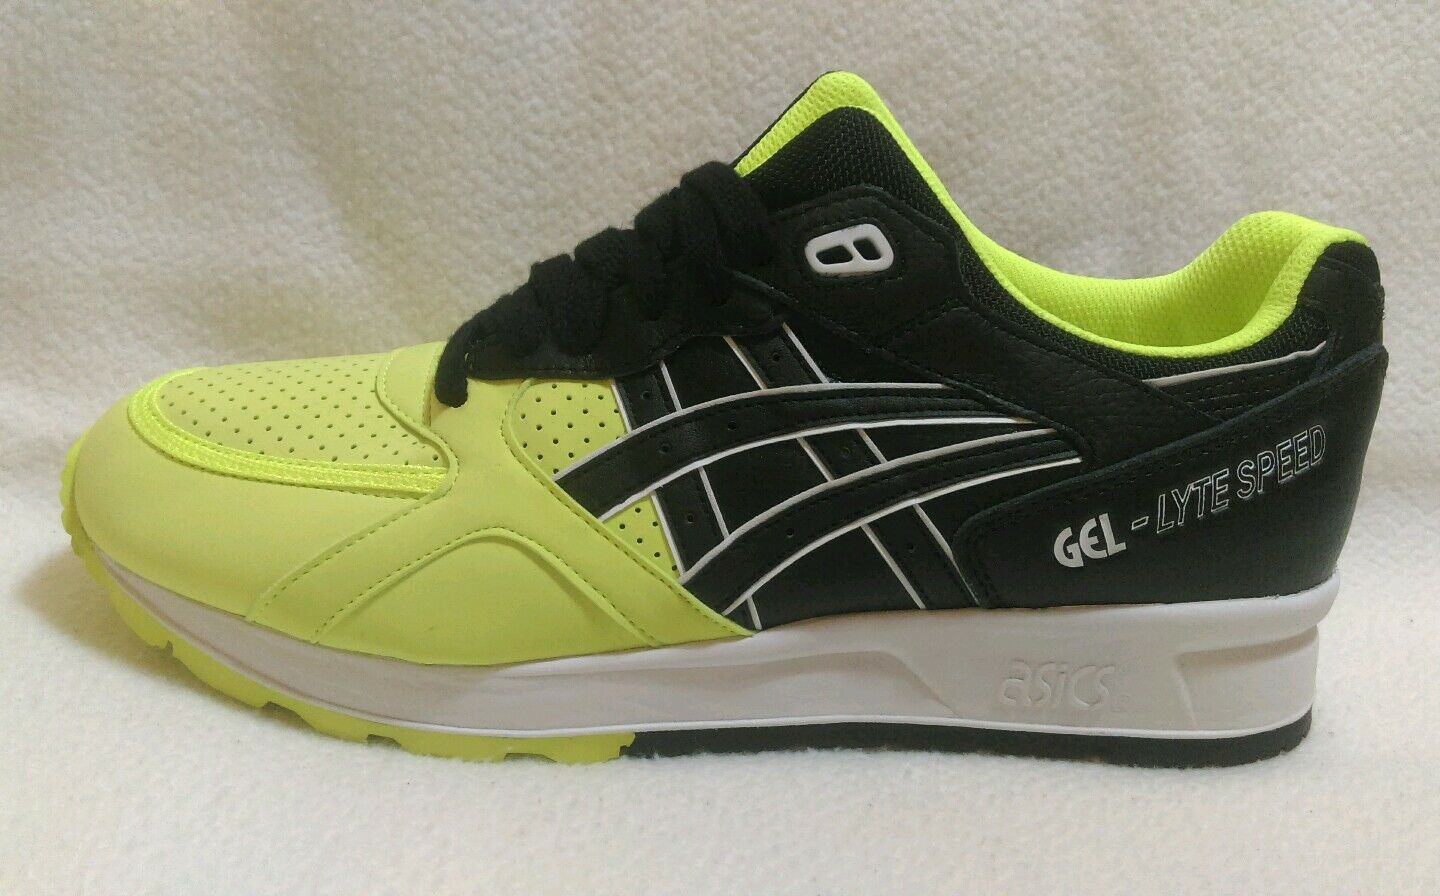 ASICS GEL - LYTE SPEED  SAFETY YELLOW / BLACK  SPEED Herren SIZE 8 SHOE ATHLETIC 398cc3